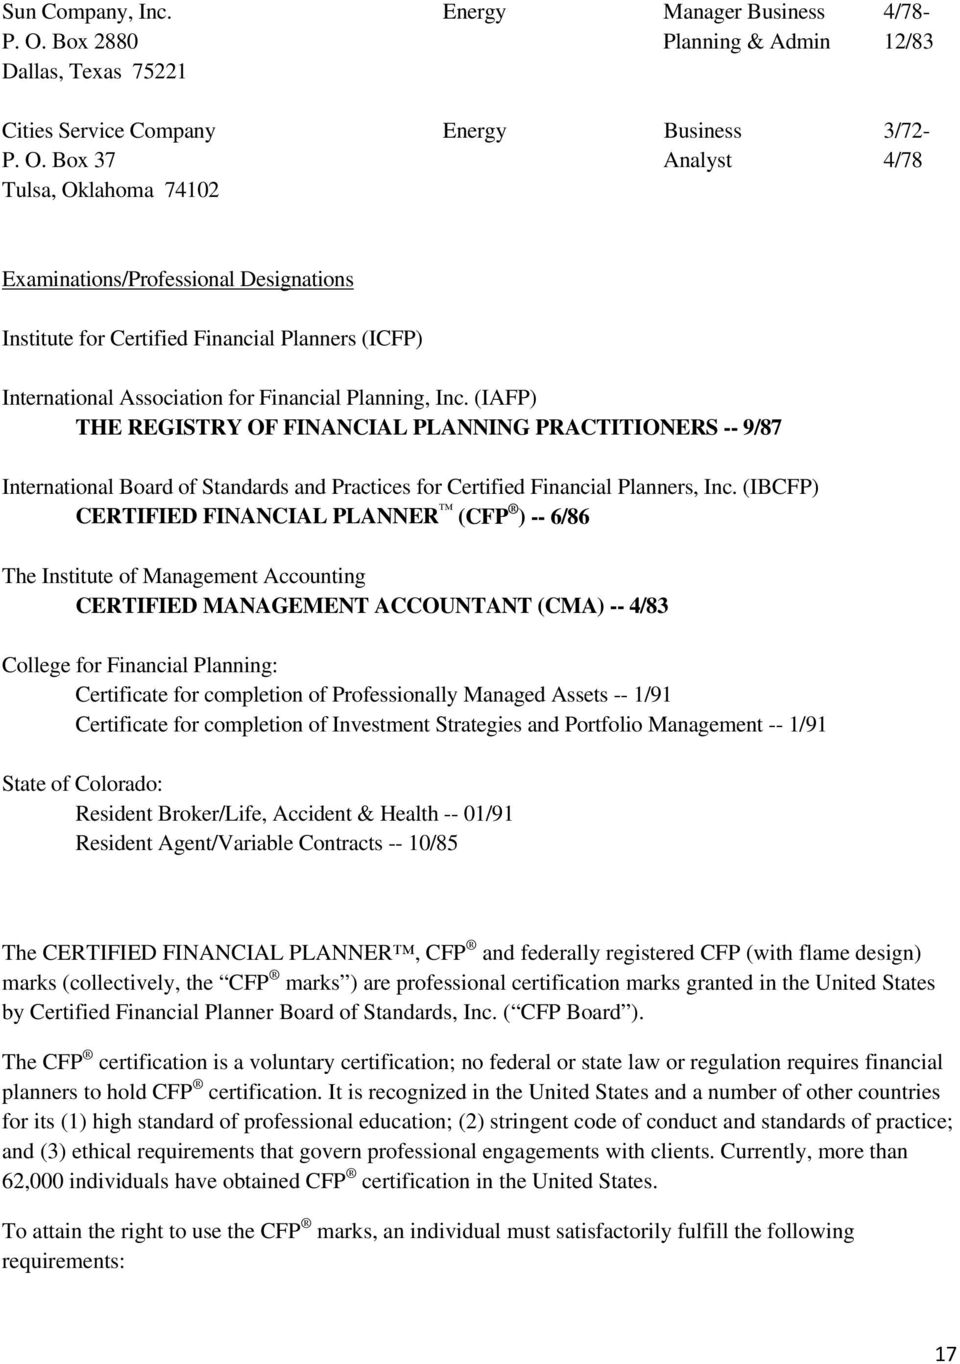 Box 37 Analyst 4/78 Tulsa, Oklahoma 74102 Examinations/Professional Designations Institute for Certified Financial Planners (ICFP) International Association for Financial Planning, Inc.